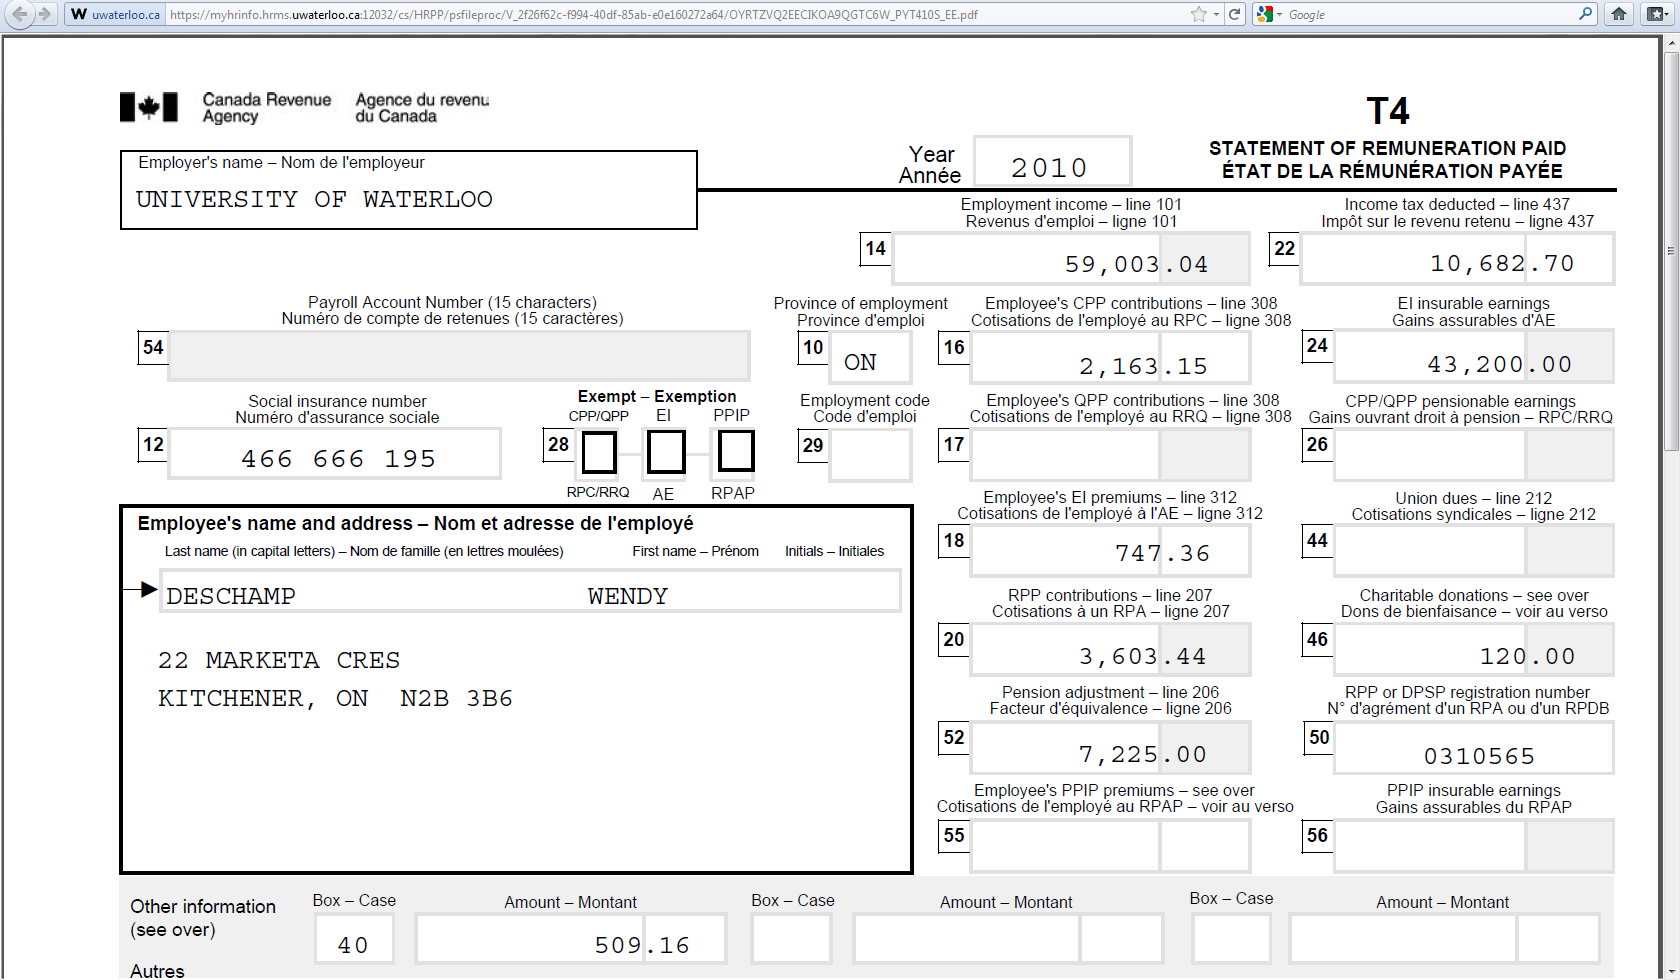 When an employee clicks on the hyperlink for the Year End Slip, a new window will open with the tax slip.